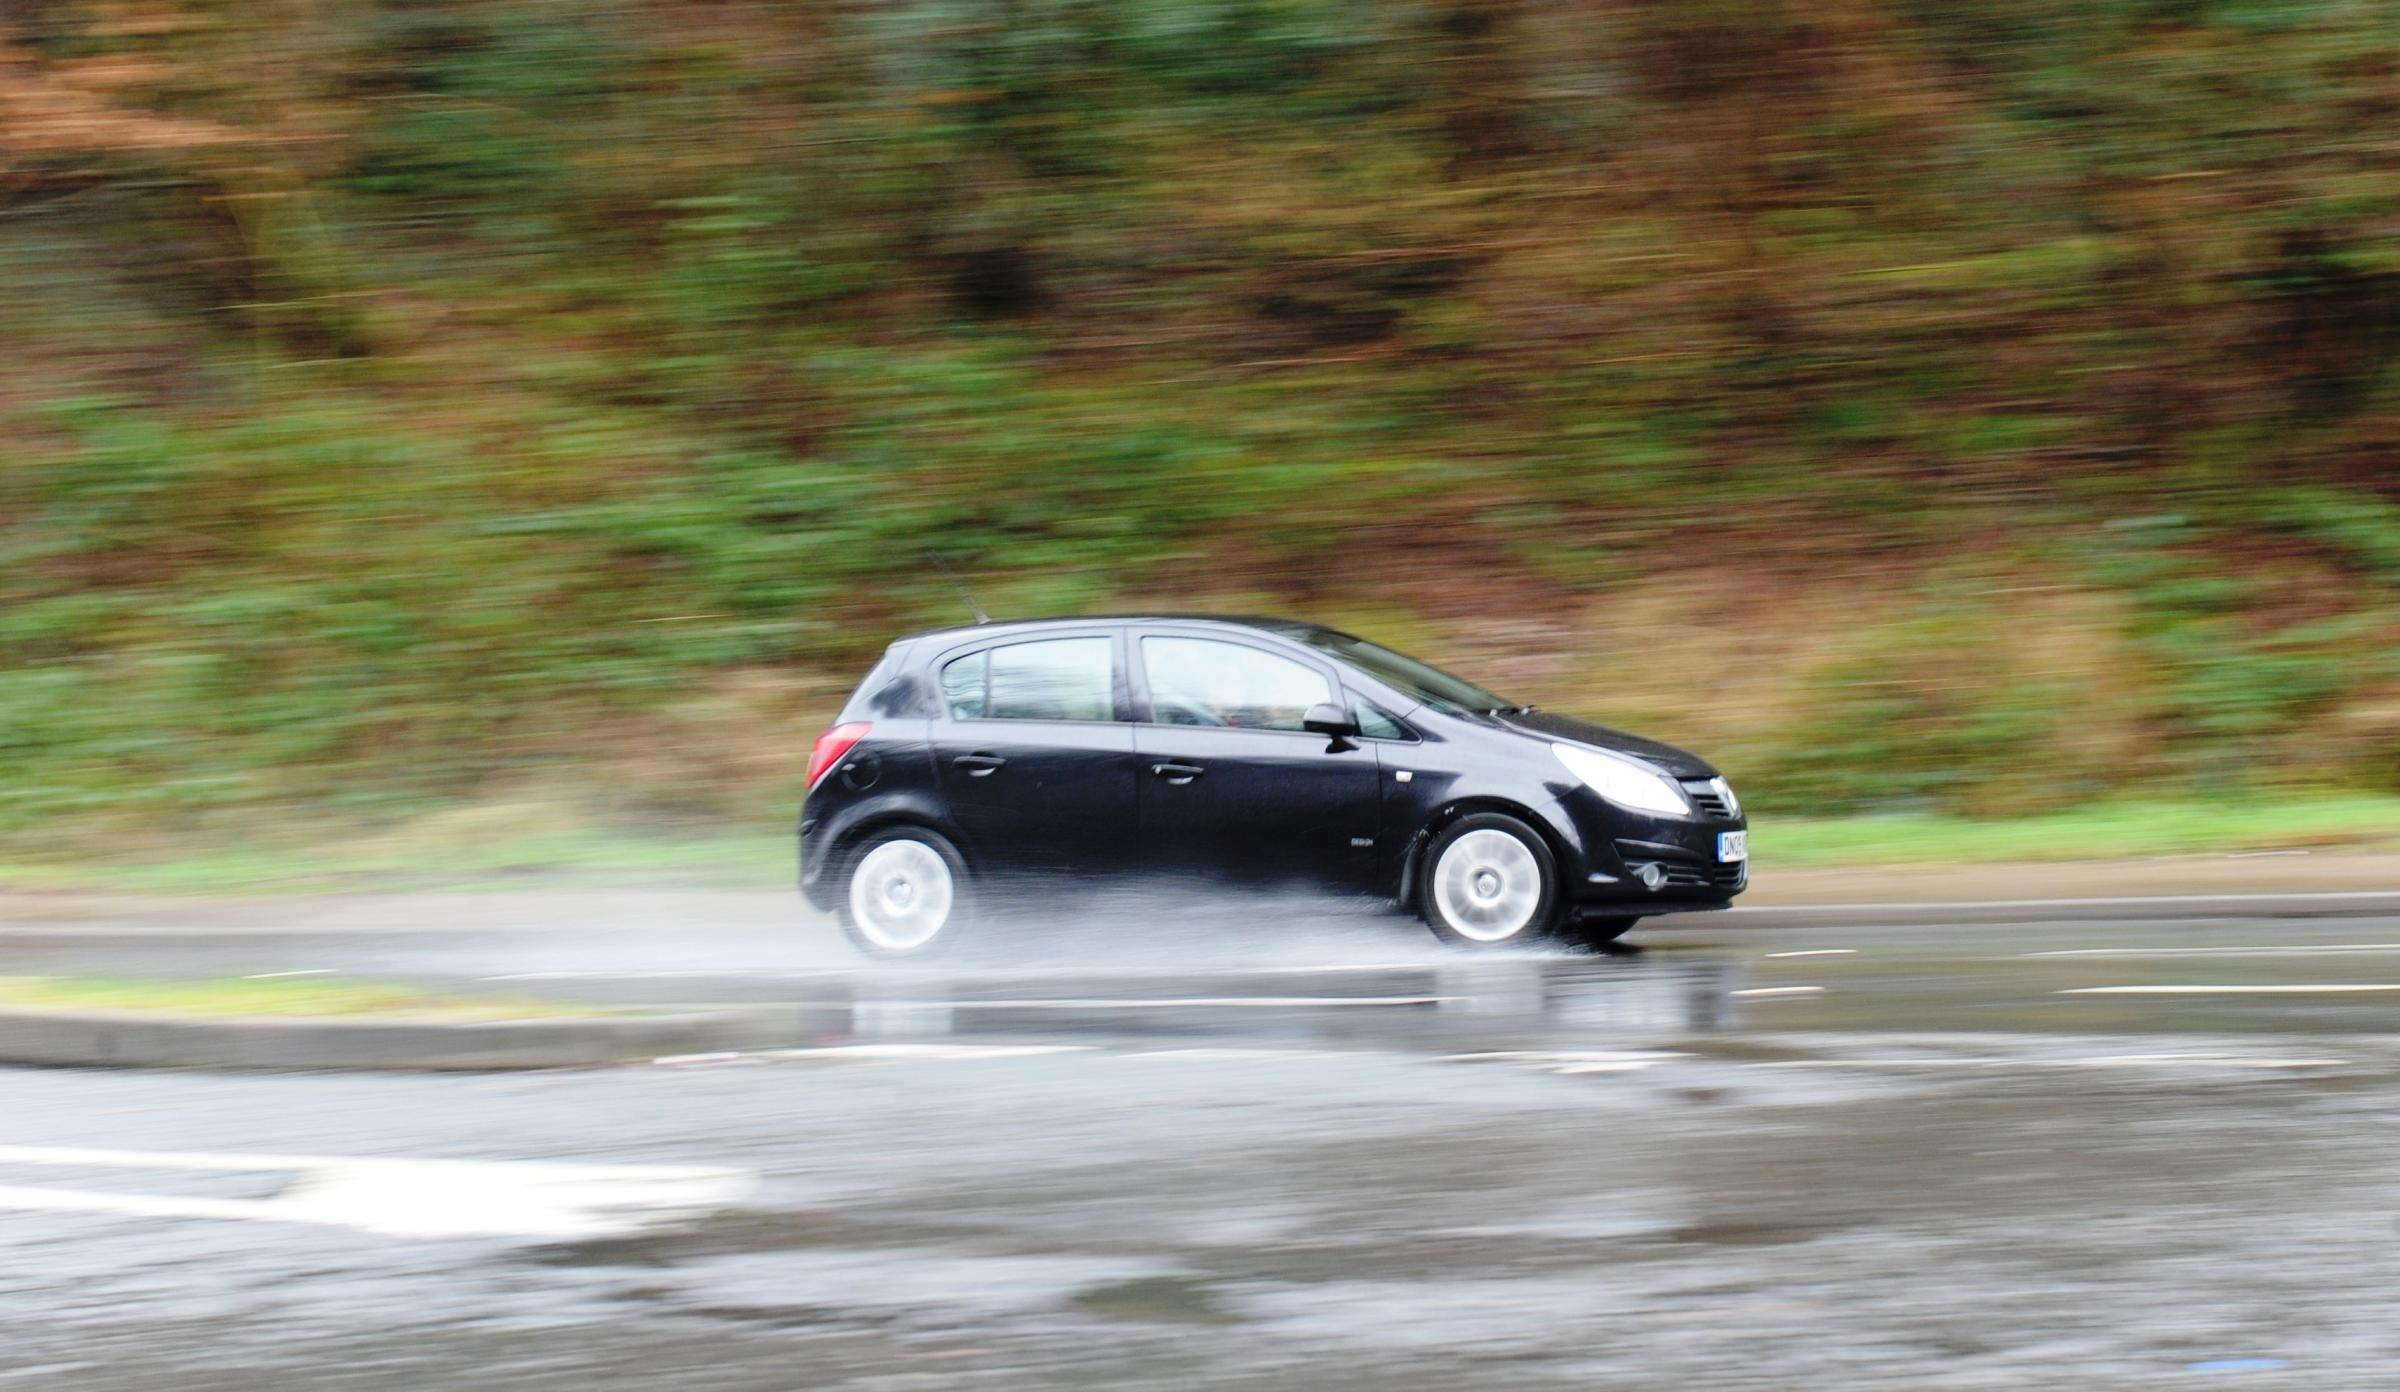 Day's rain across Wiltshire leaves large puddles on many routes